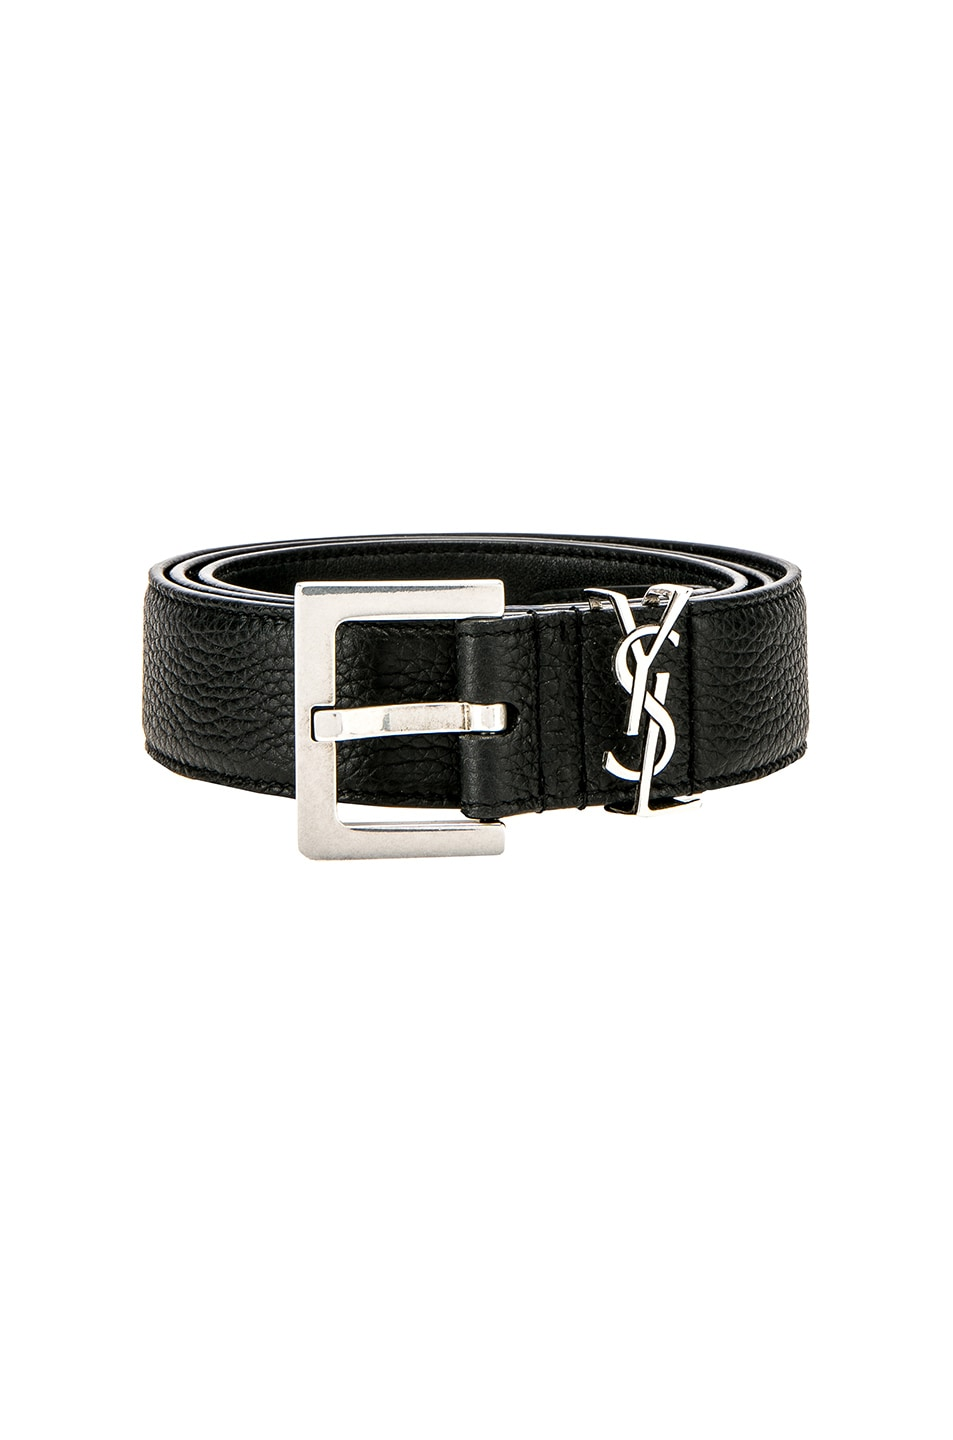 Image 1 of Saint Laurent Belt in Black